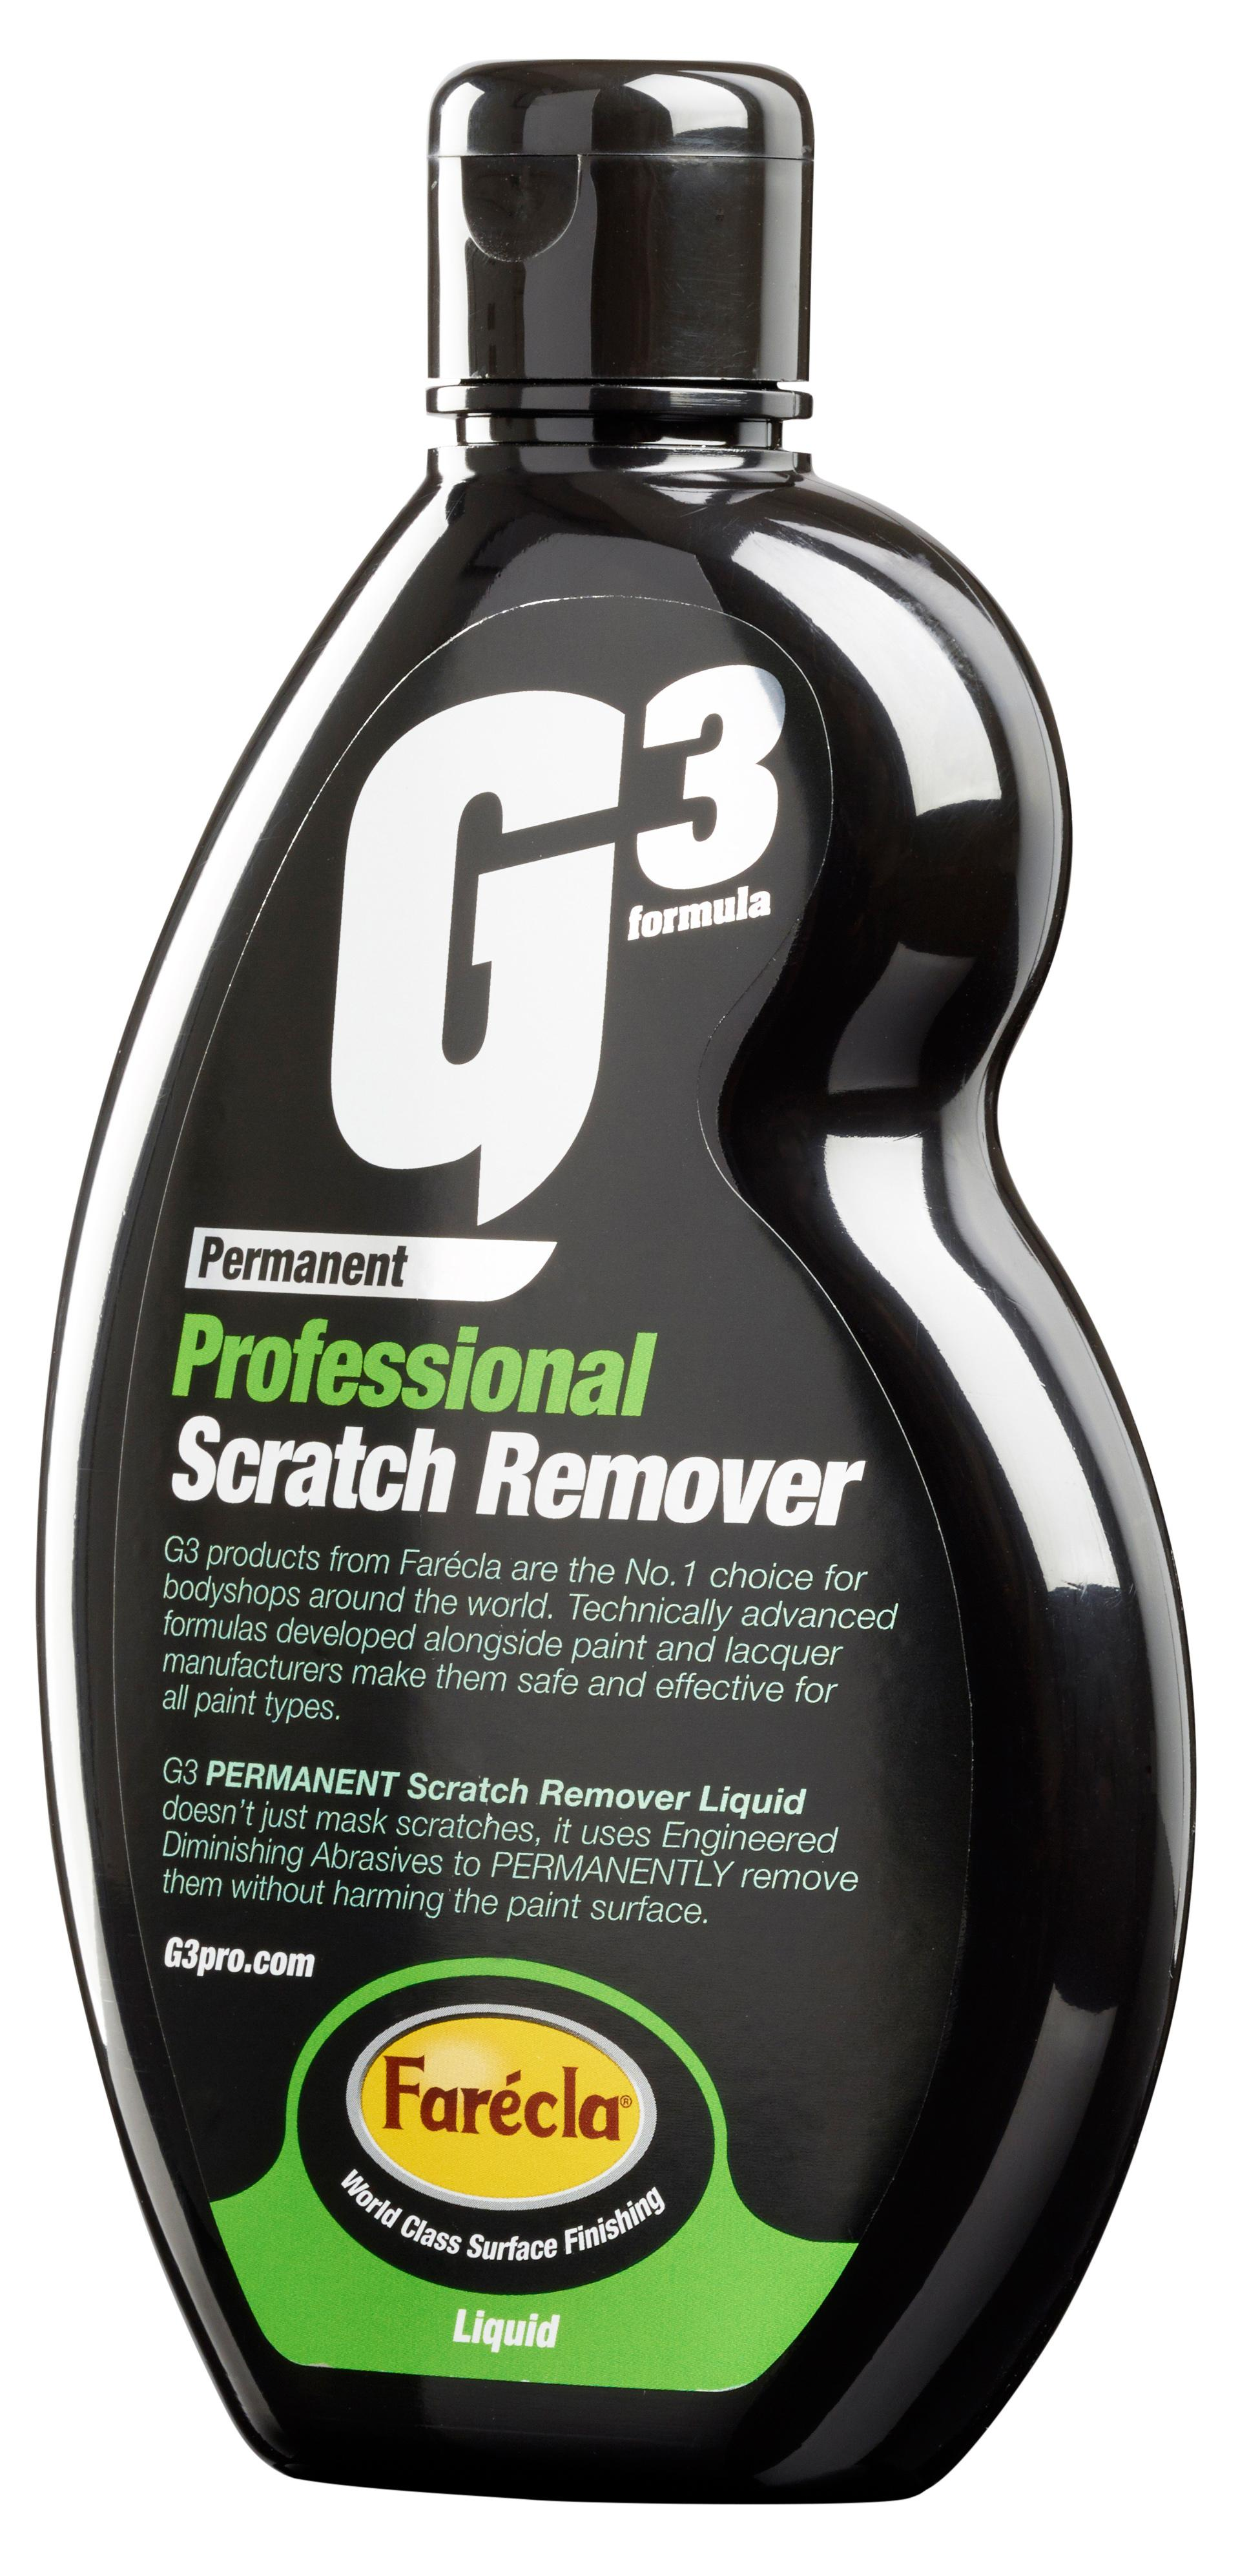 Farecla G3 Permanent Scratch Remover Liquid 500ml Car Paint Bodywork